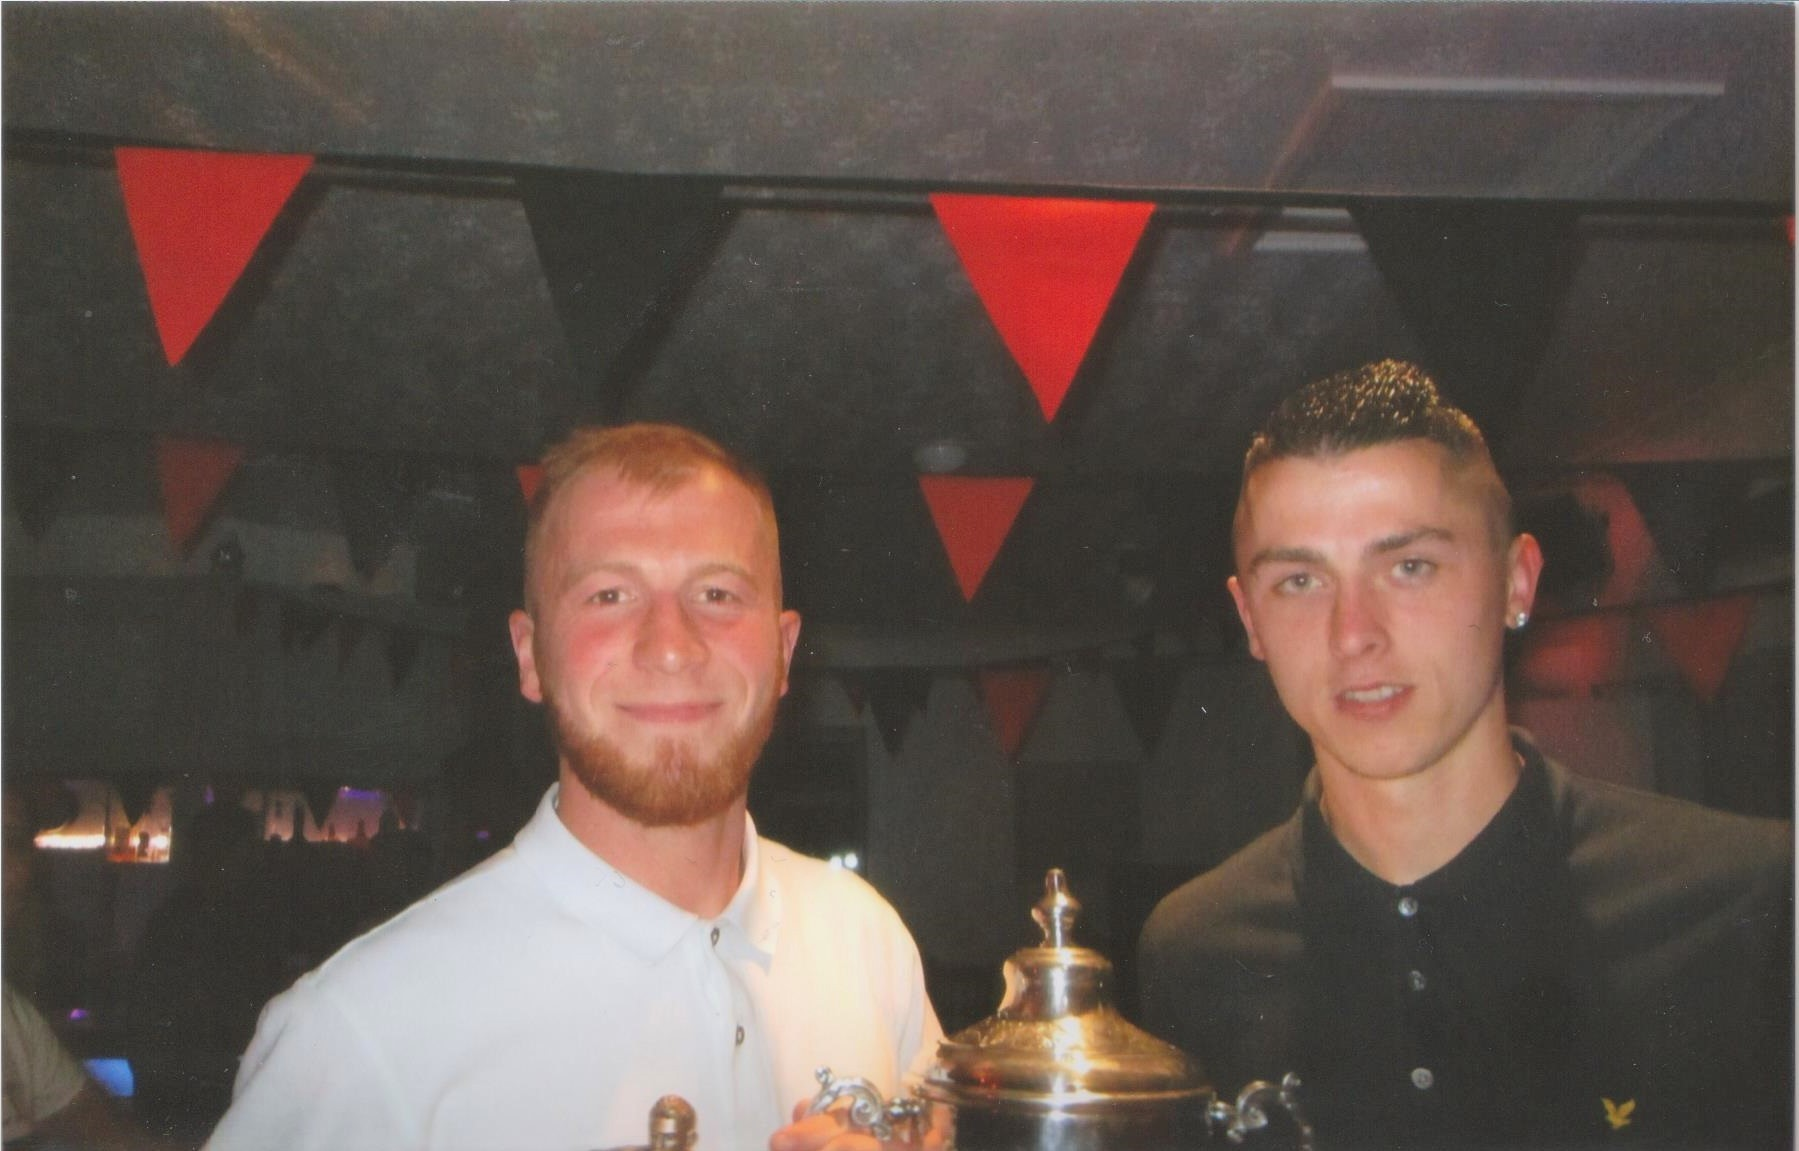 Russell May (left) won Sportsman of the Year, while Ryan Reeve (right) was voted best first-team player